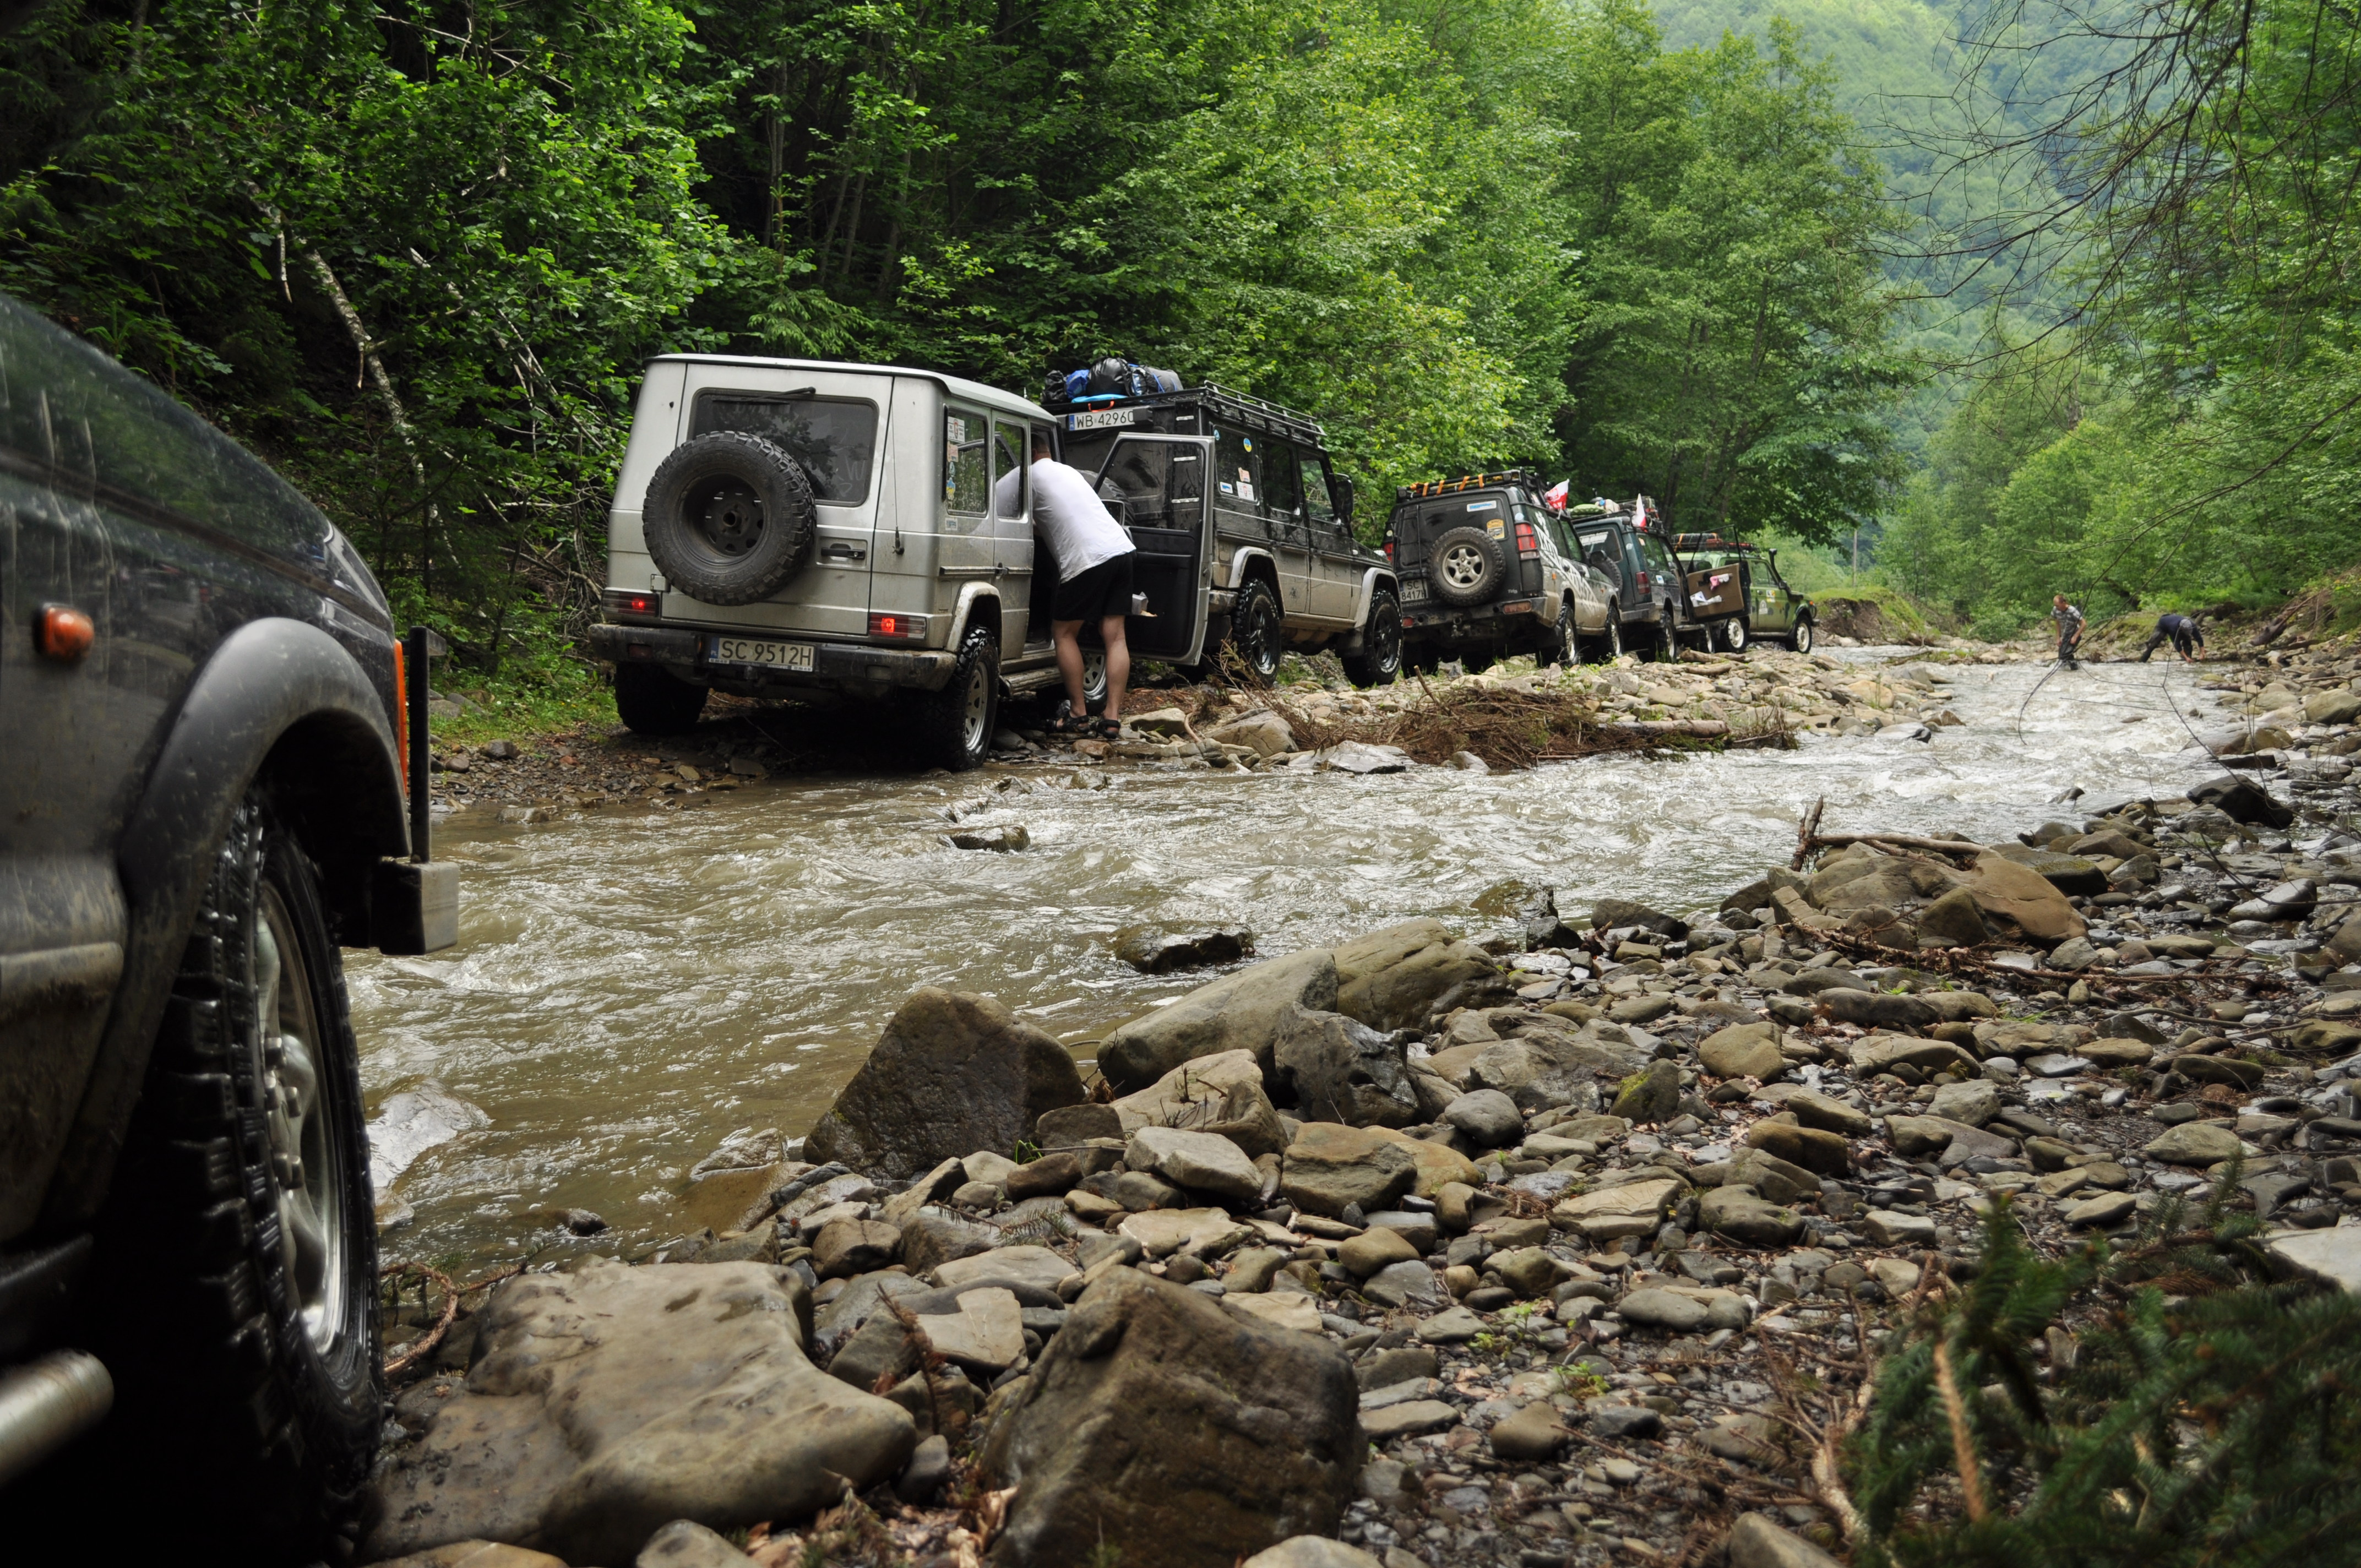 off-road incentive